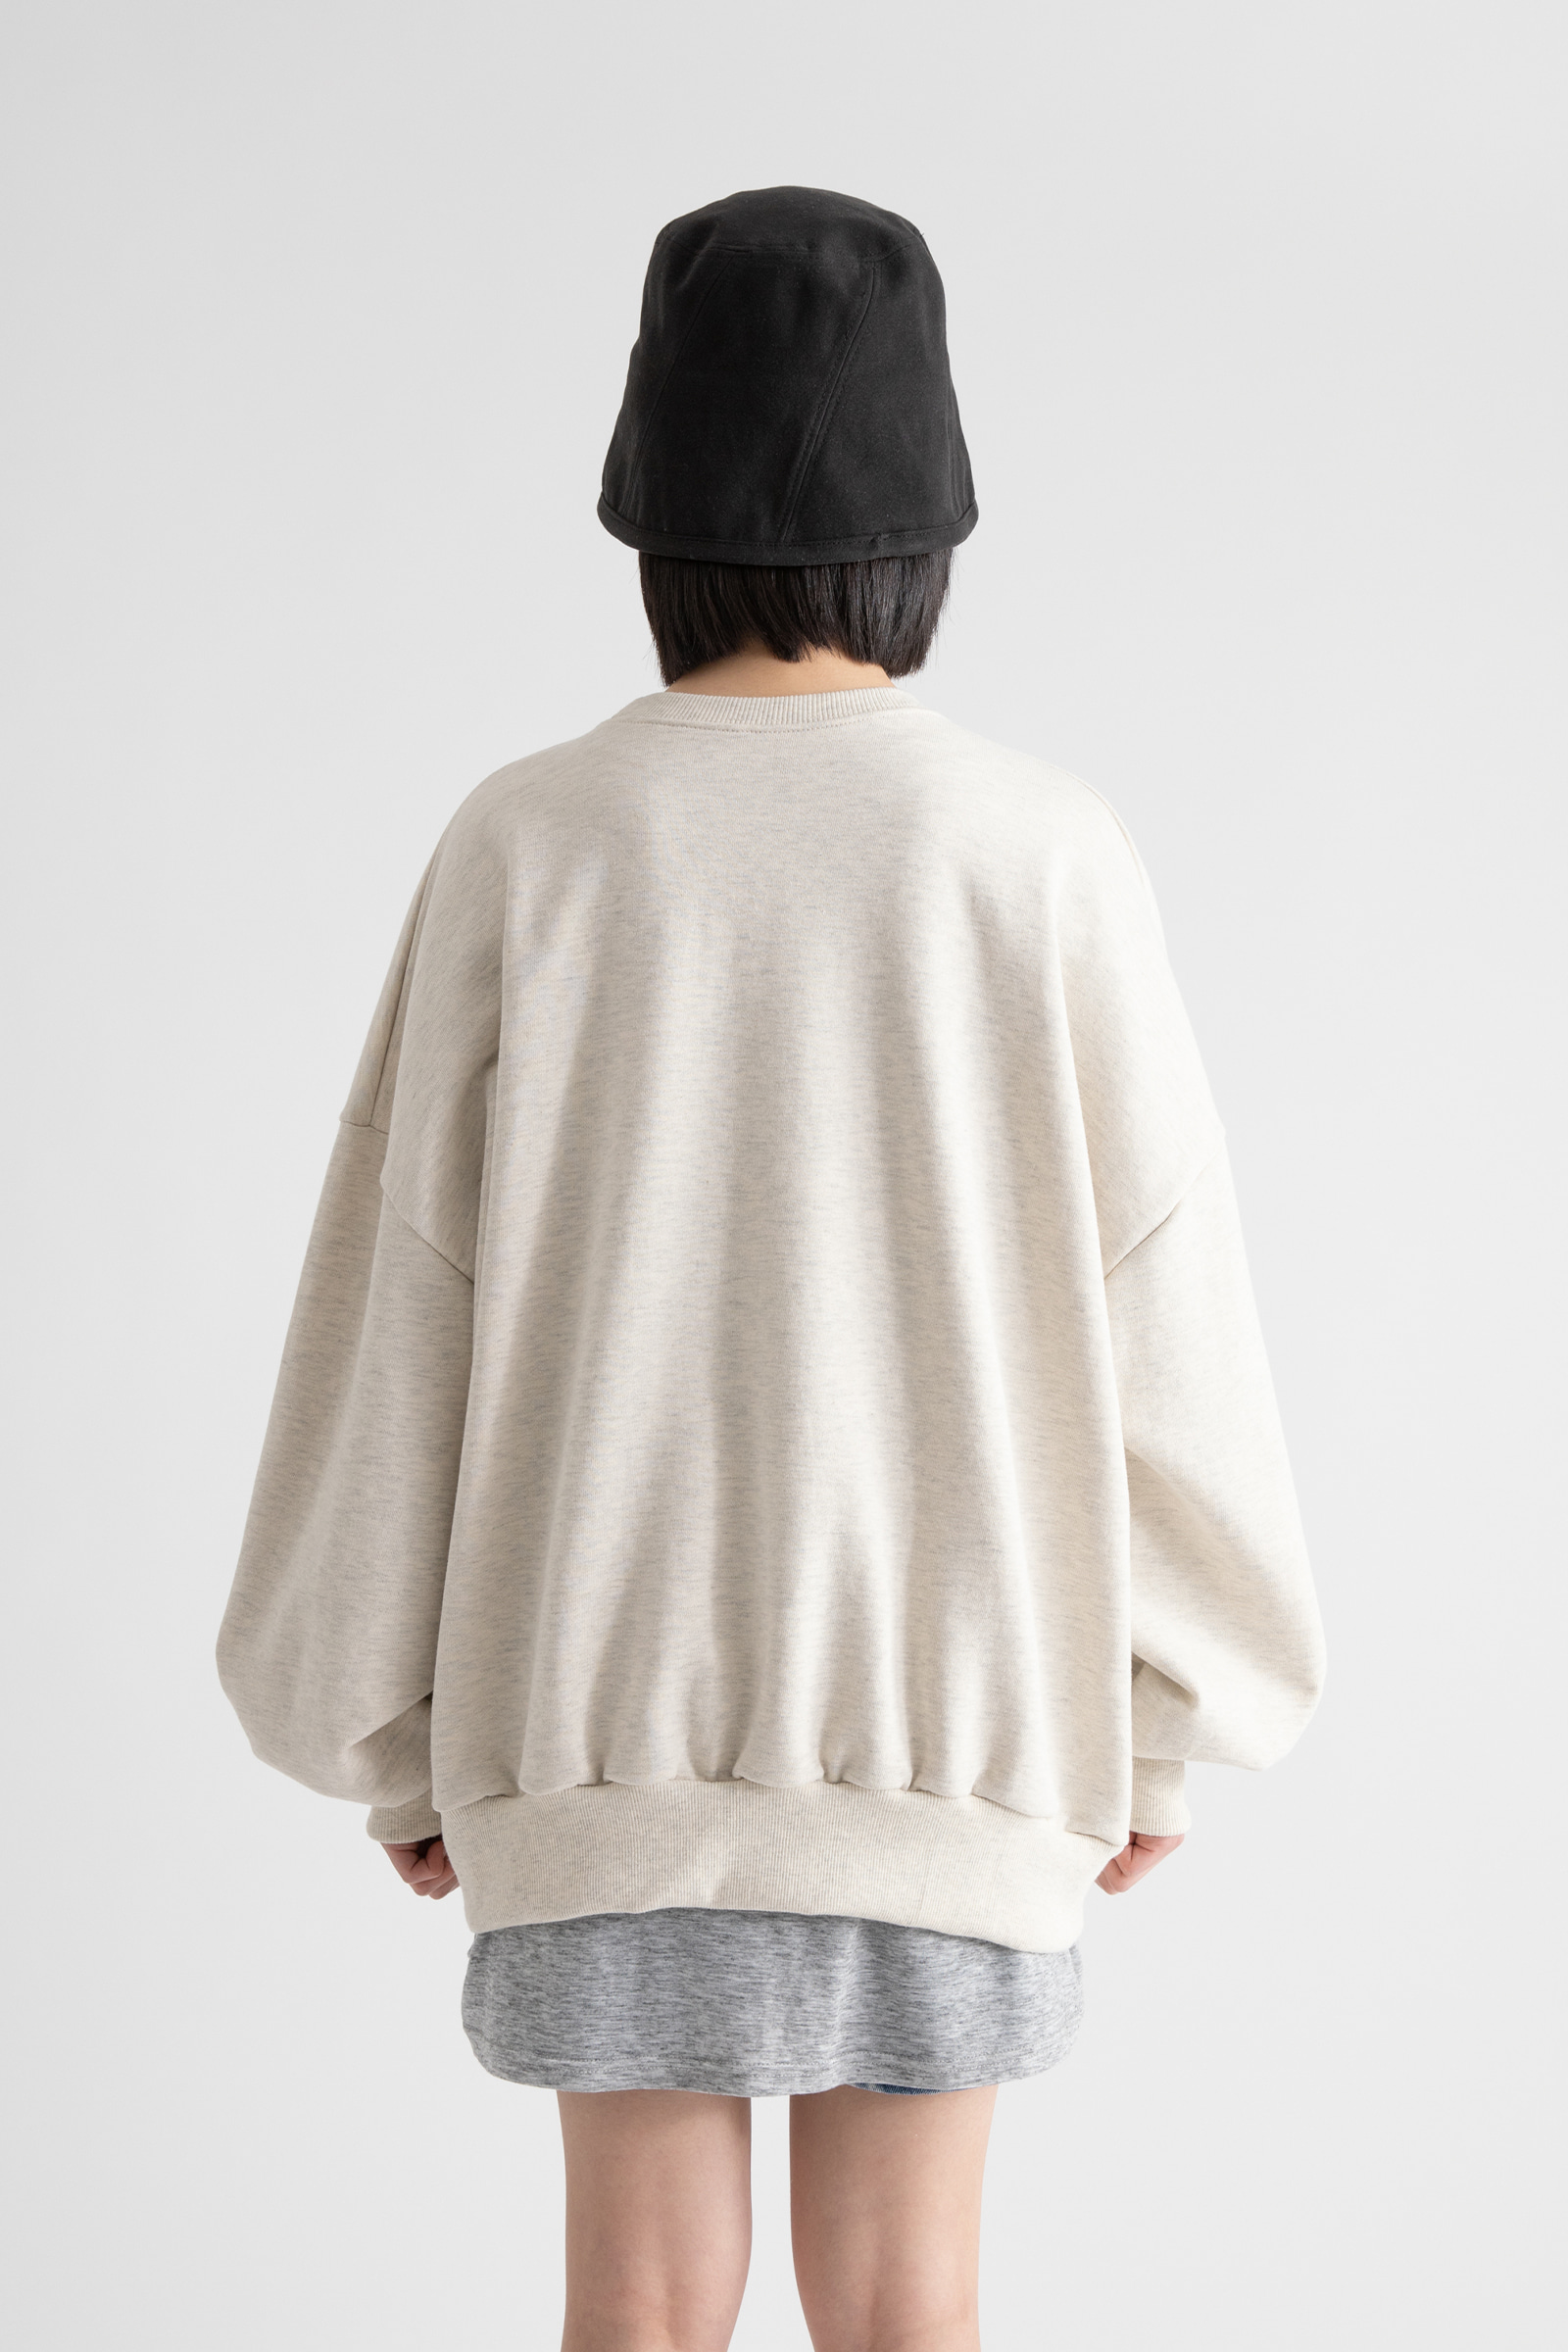 Simply one-to-one sweatshirt